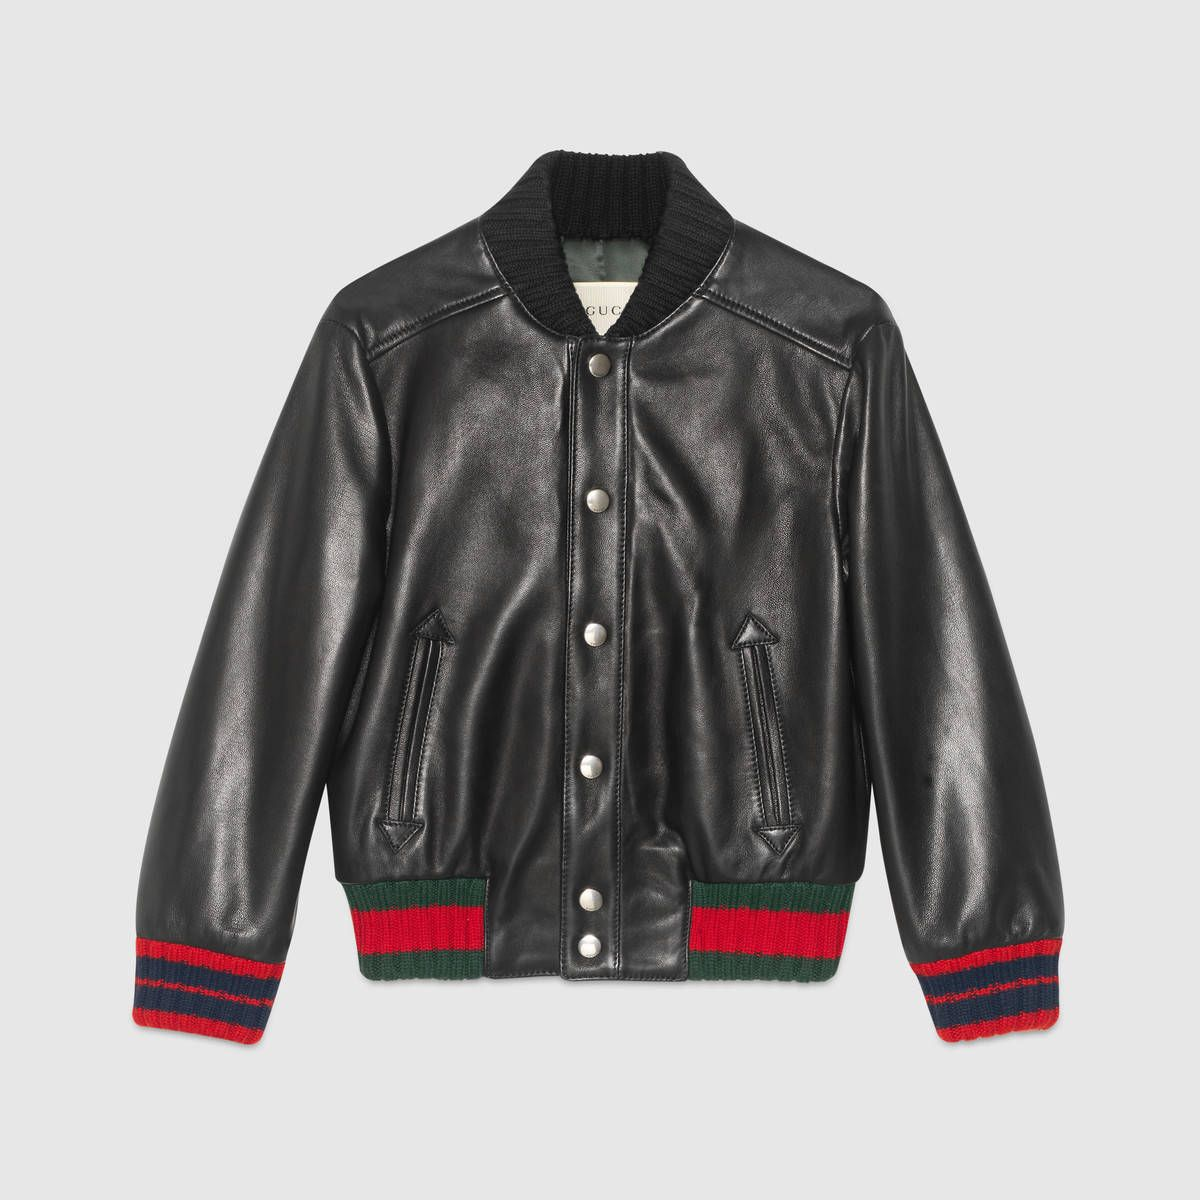 Children S Leather Bomber With Web Girls Jacket Designer Outerwear Leather Jacket [ 1200 x 1200 Pixel ]